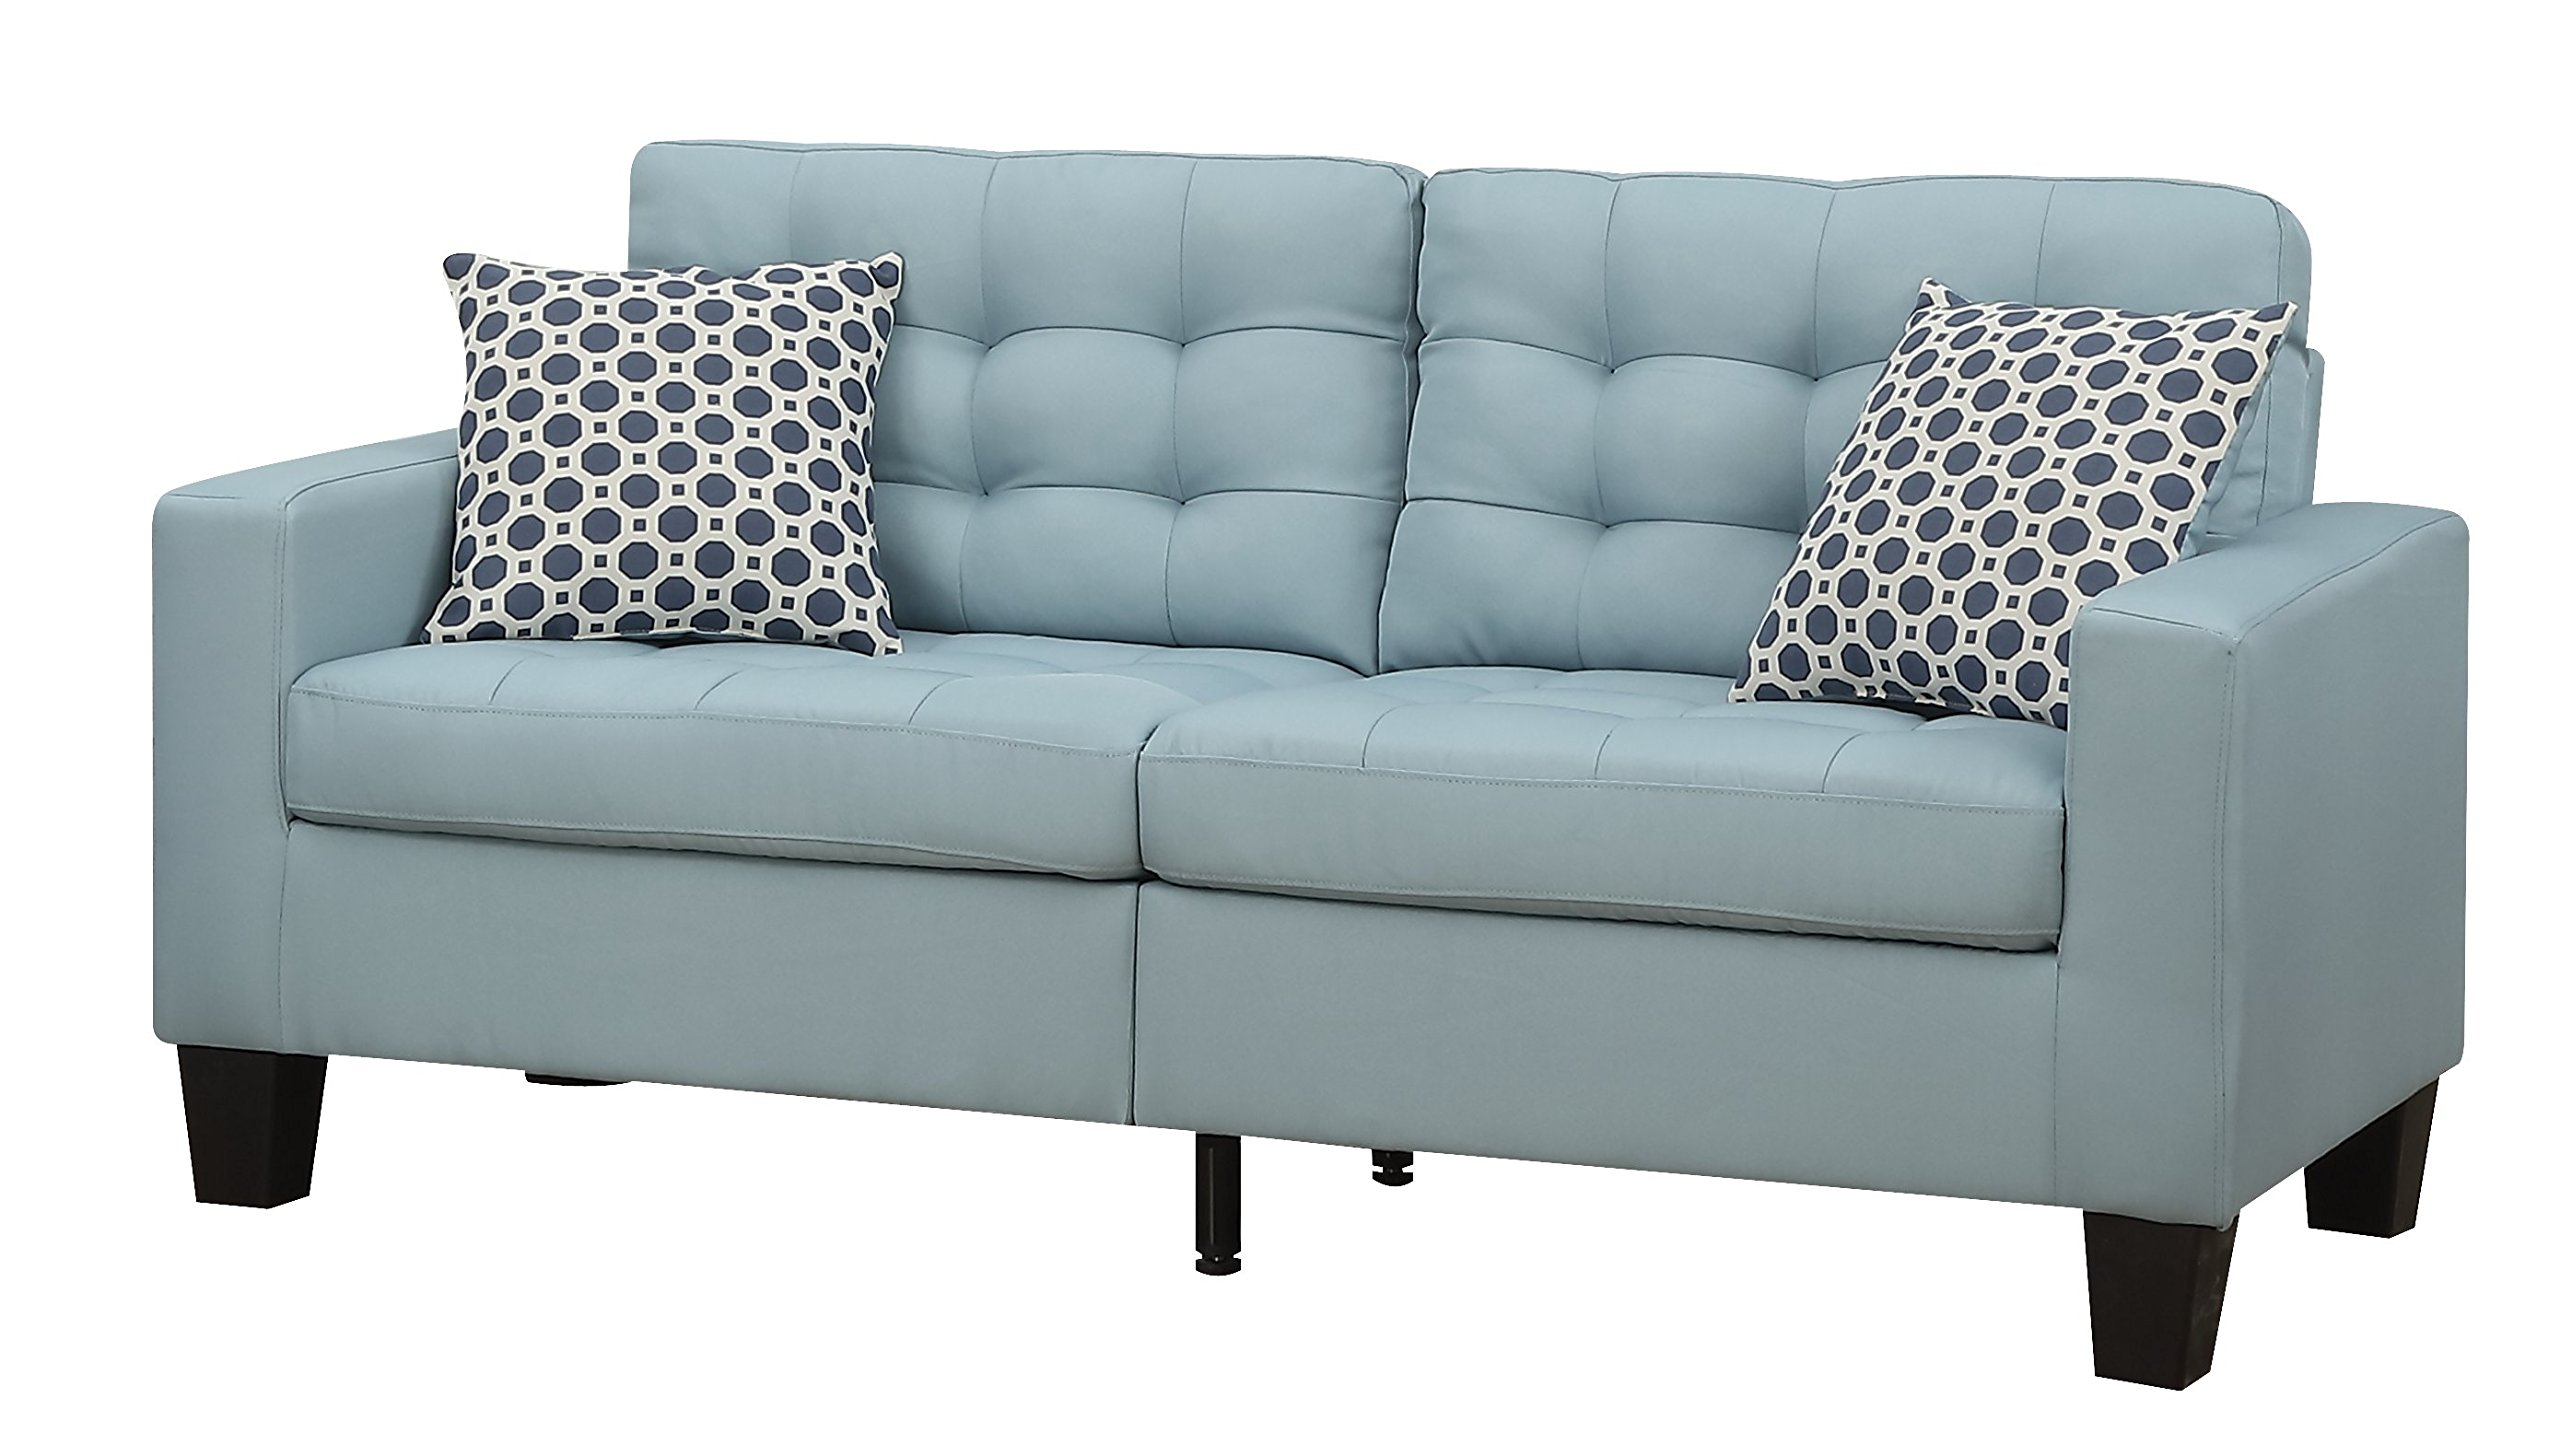 Furniture World Aston Sofa, Turquoise